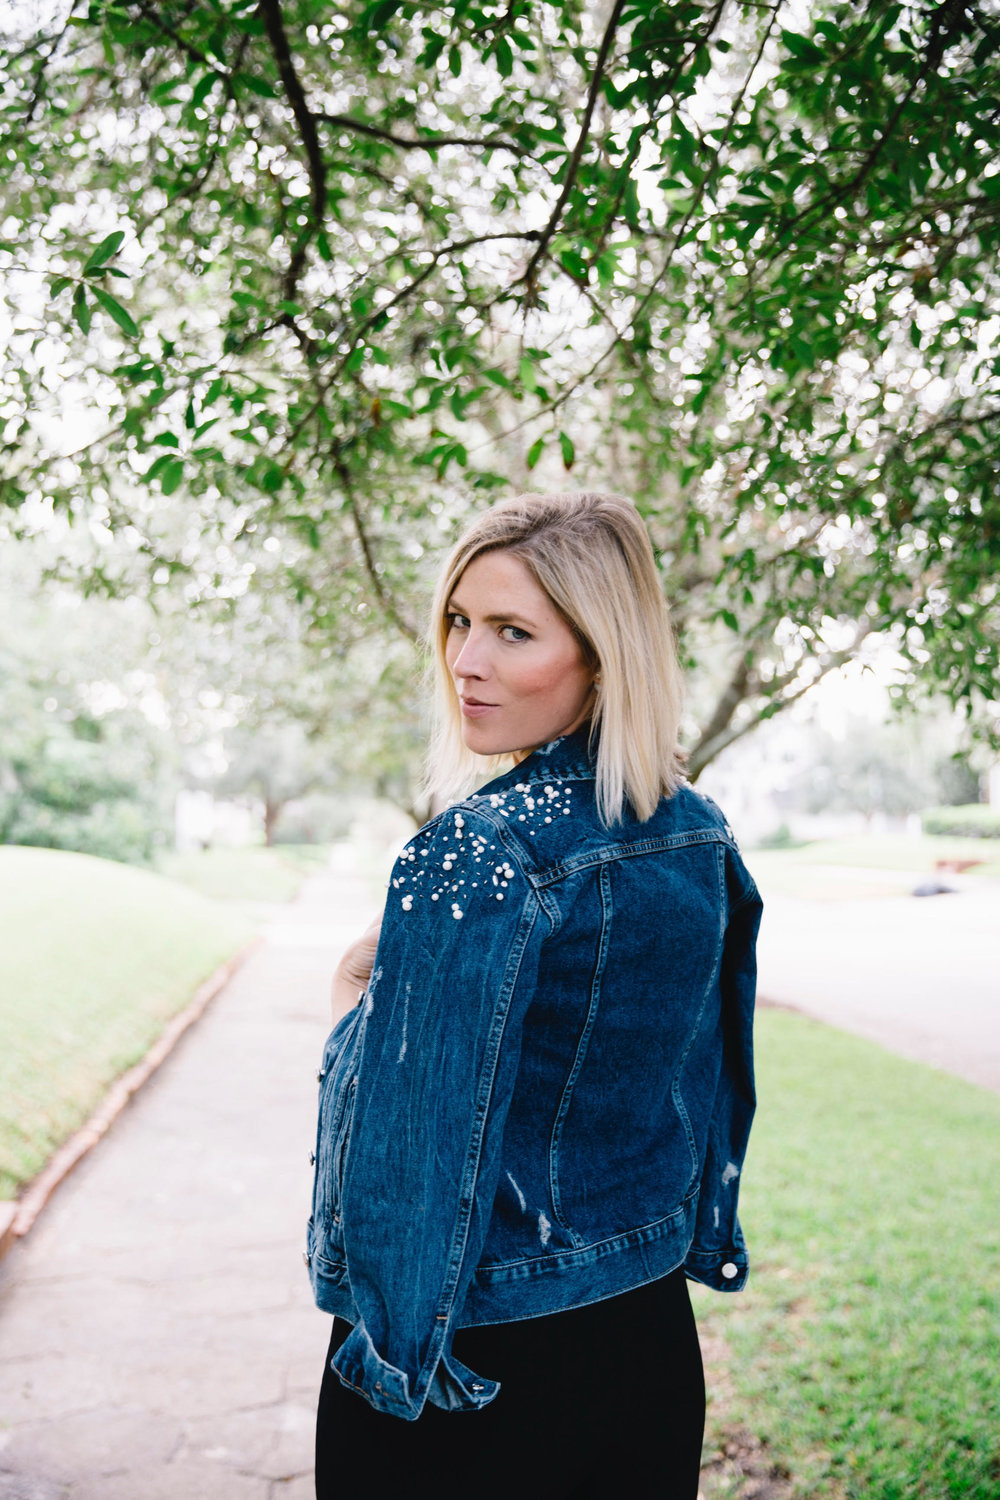 My new favorite jacket of all time from Anthropologie. It is a life changer! Click the image to shop it. Photo by Kelly Martucci, Jacksonville, Florida